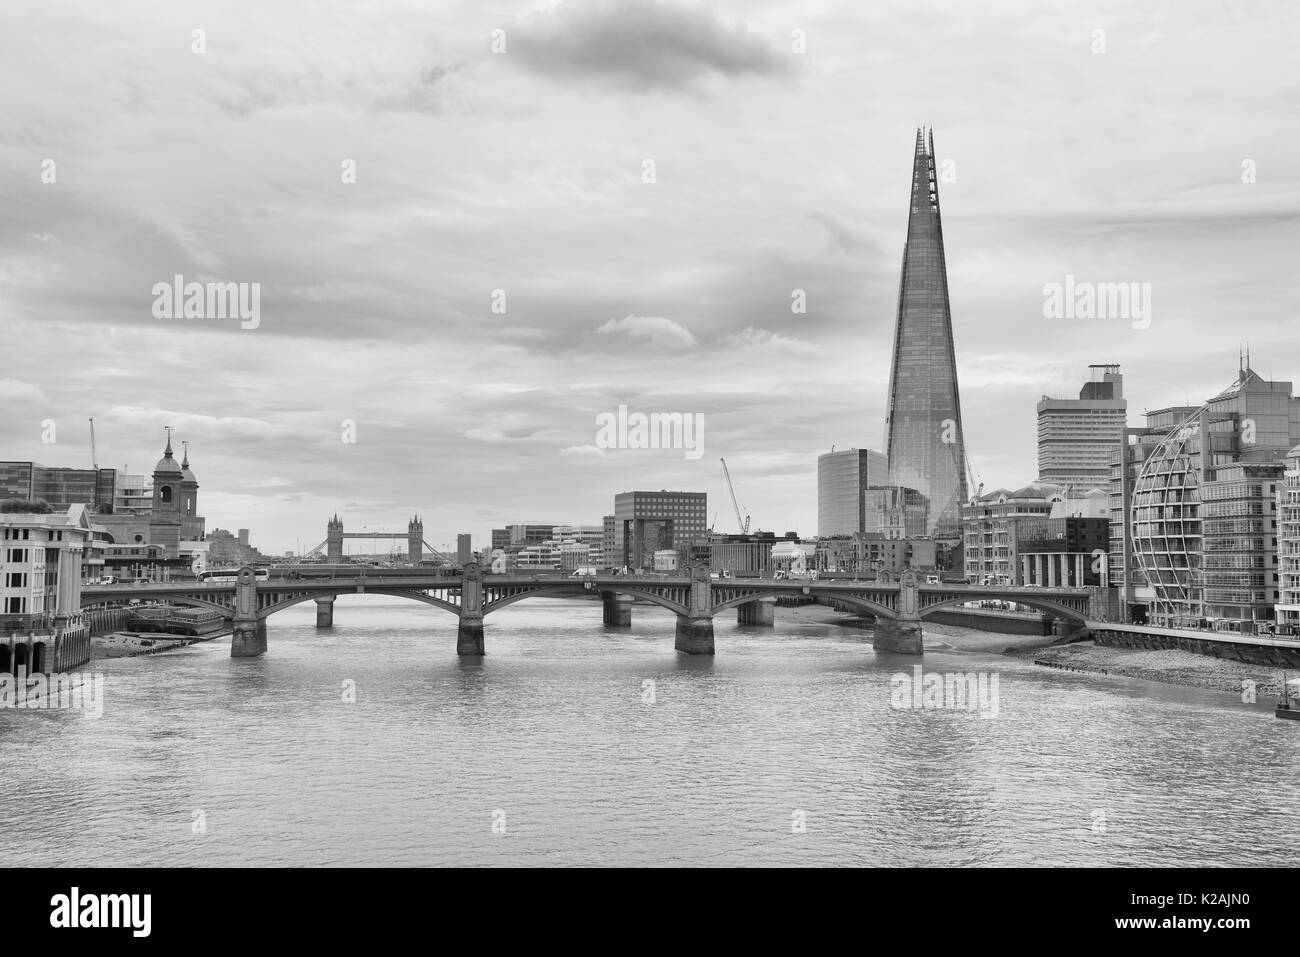 London skyline and the River Thames including Southwark Bridge and The Shard building - Stock Image